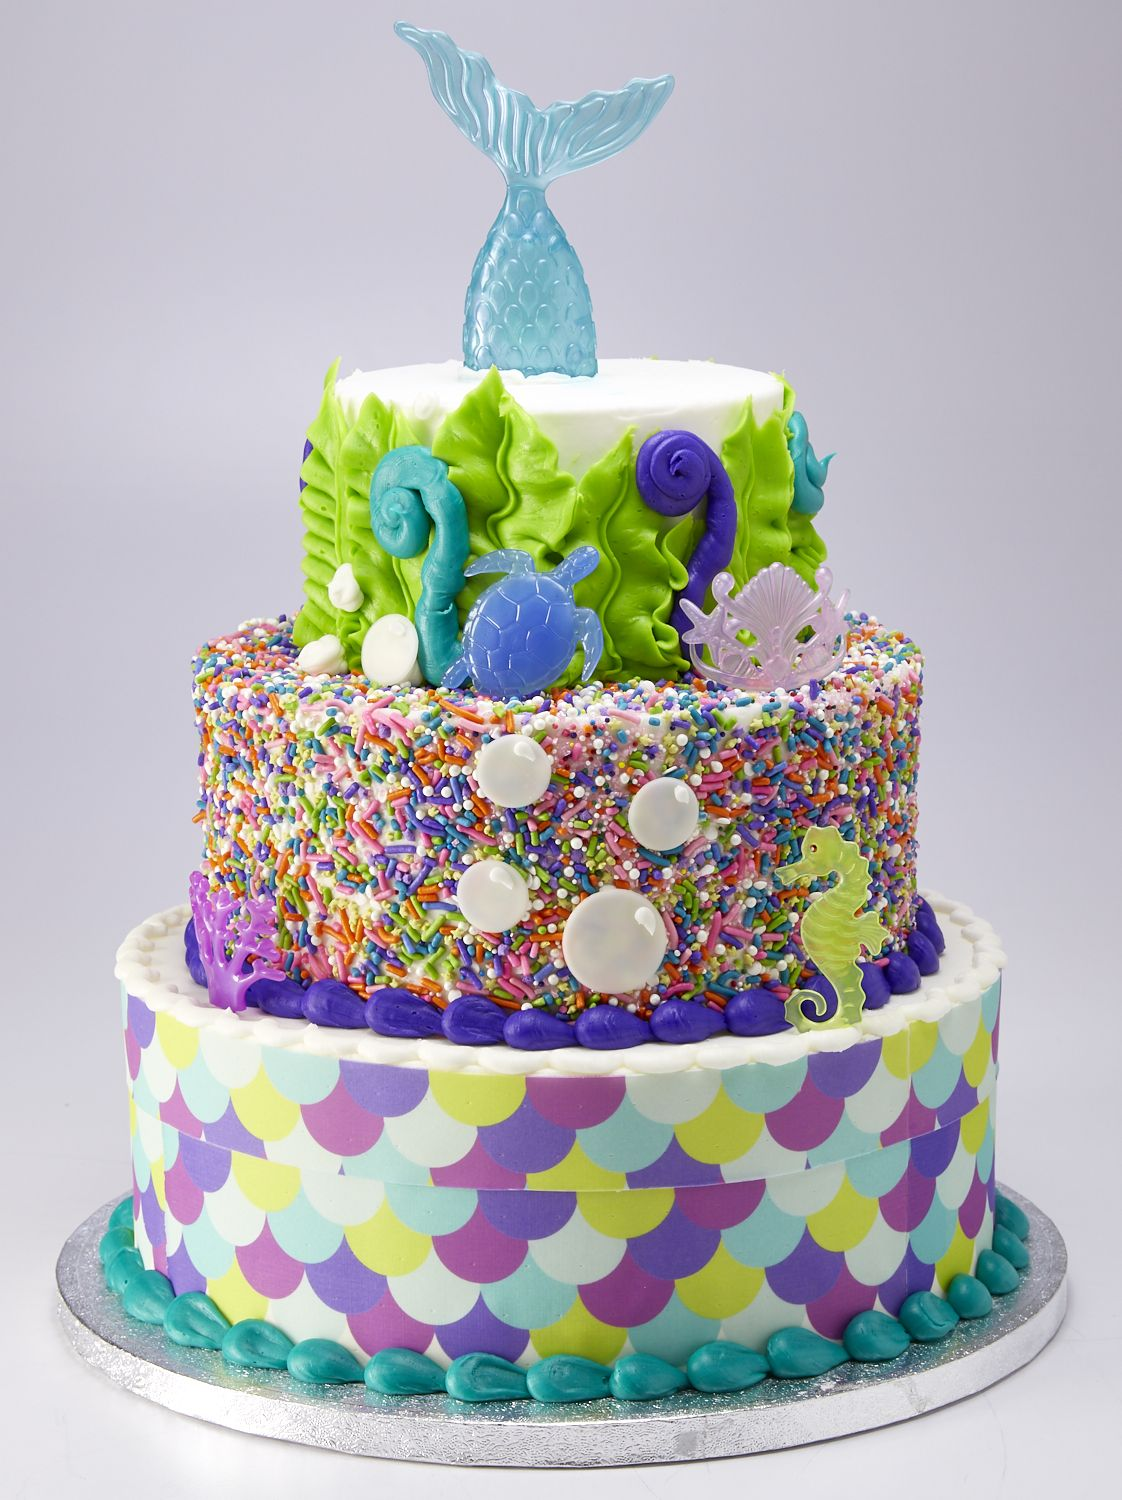 You Can Get A 3 Tier Mermaid Cake At Sams Club For Less Than 70